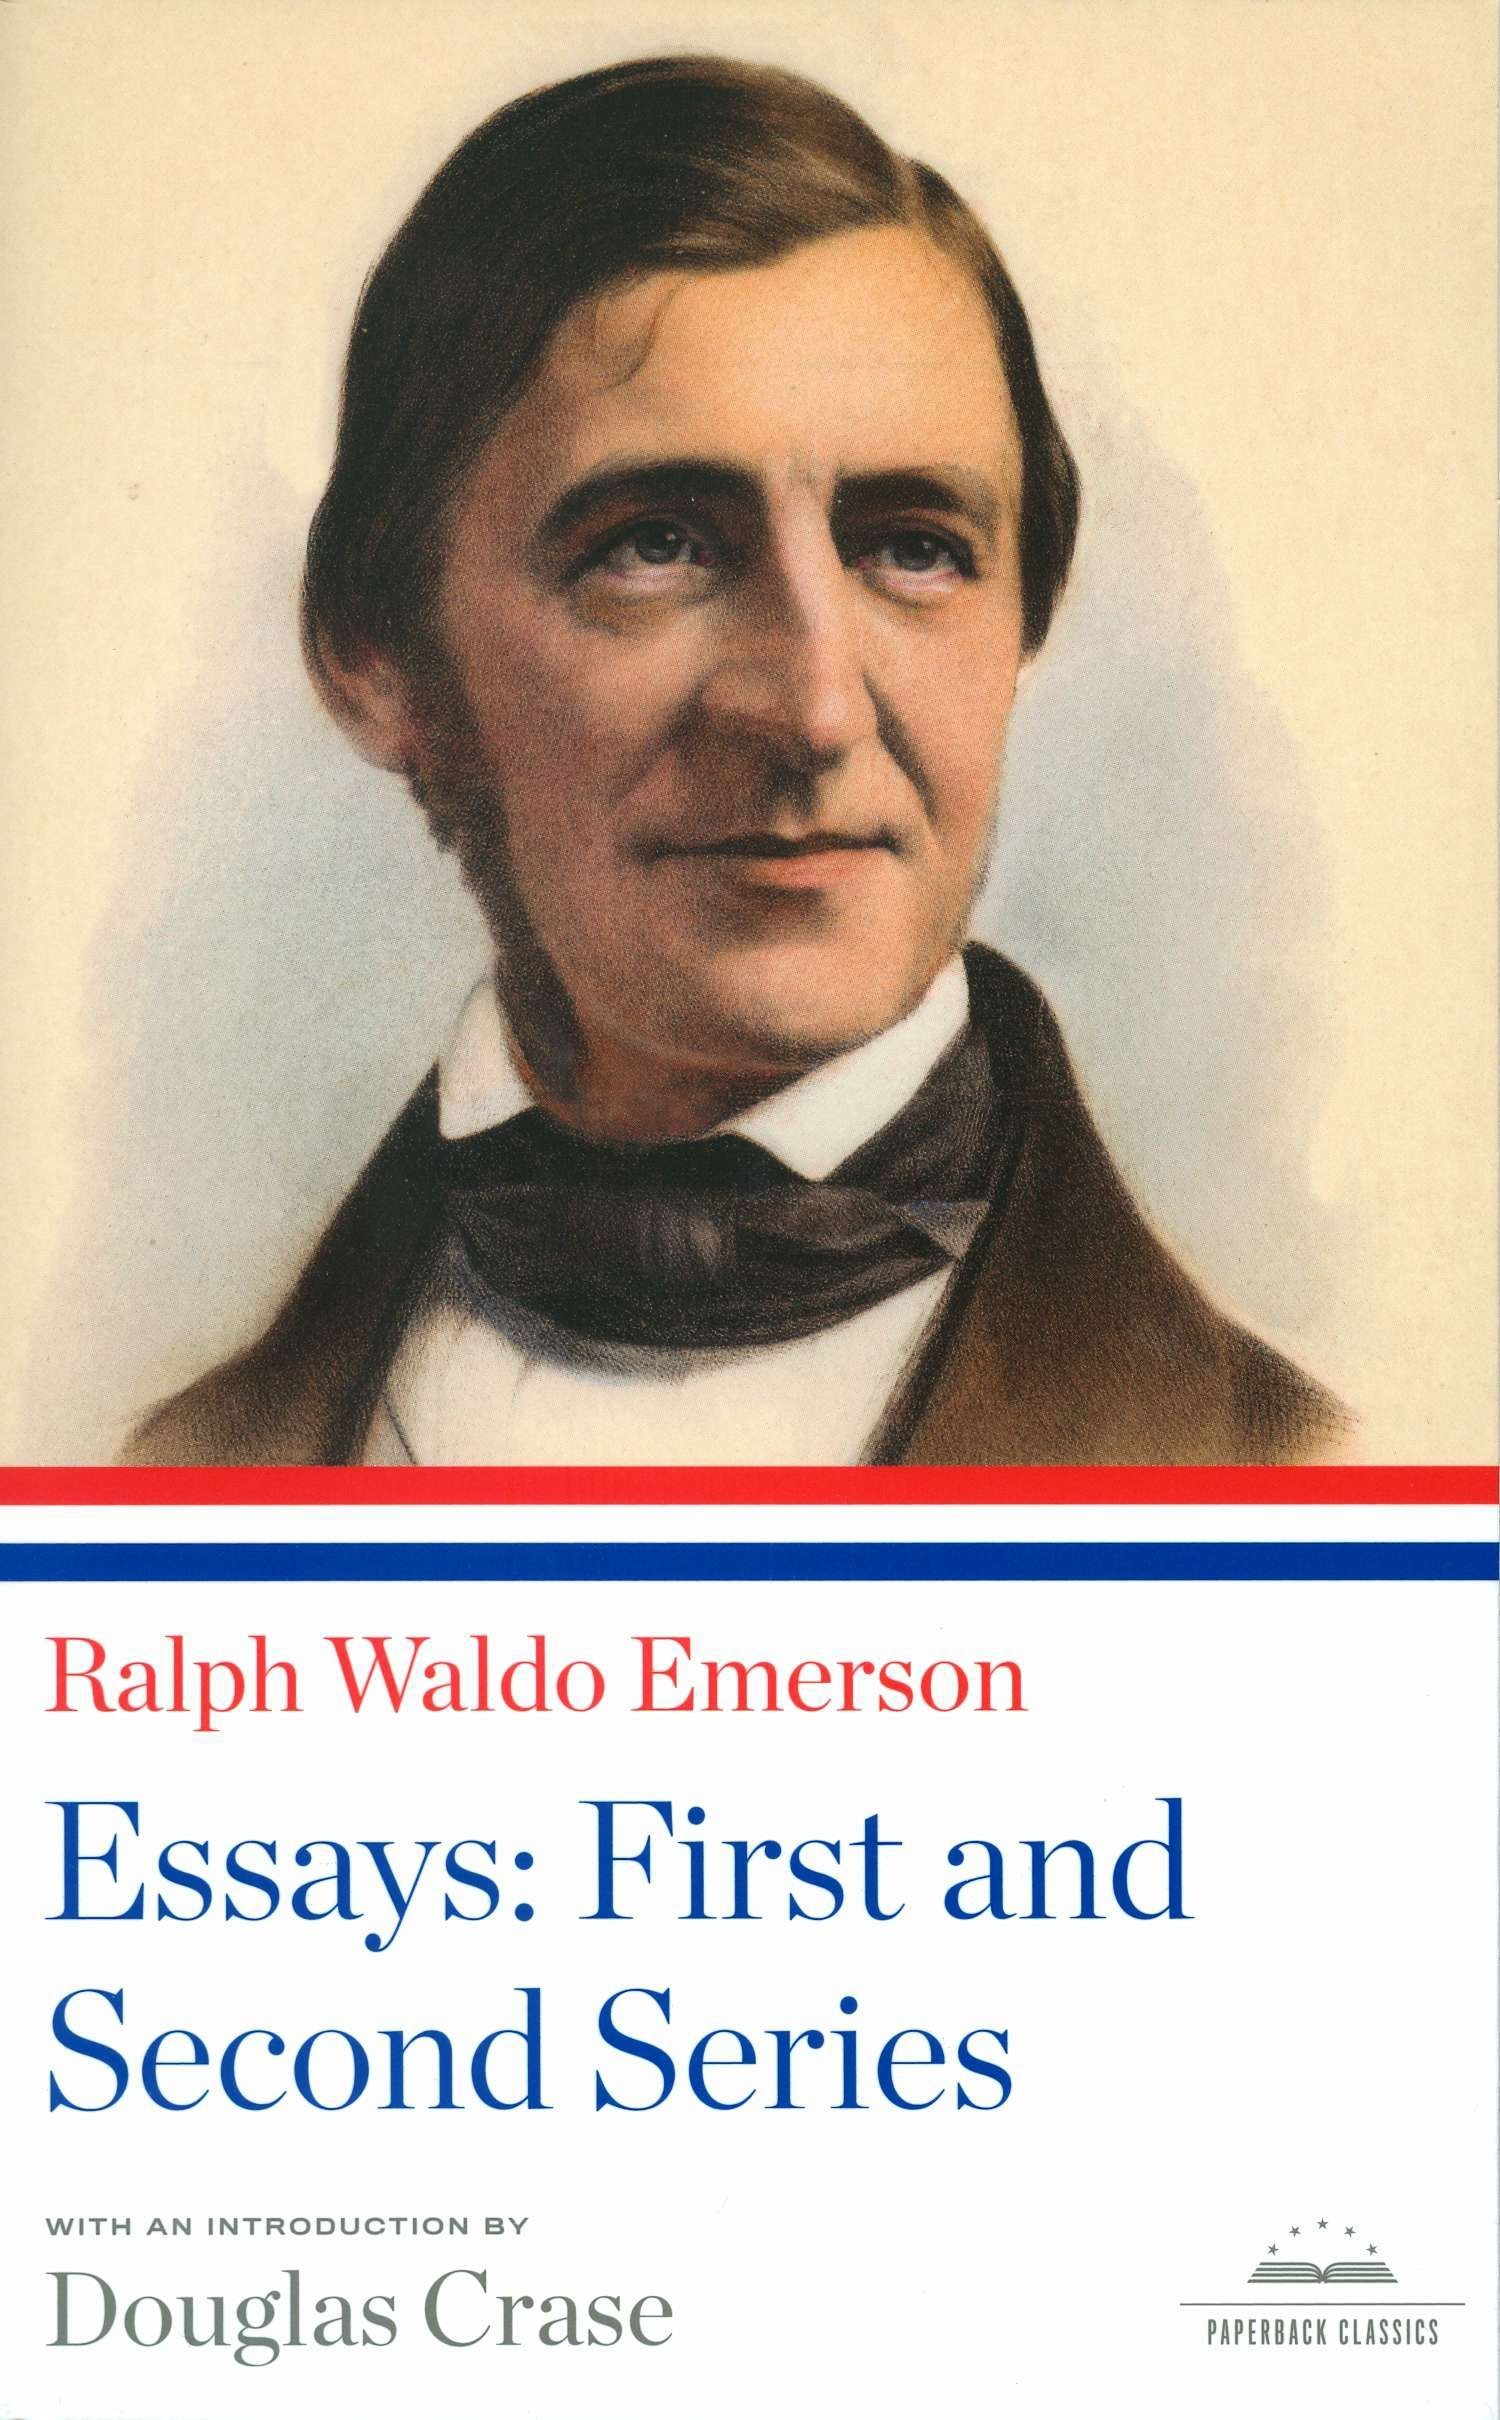 Ralph Waldo Emerson: Essays: First and Second Series: A Library of America Paperback Classic (Library of America Paperback Classics) PDF